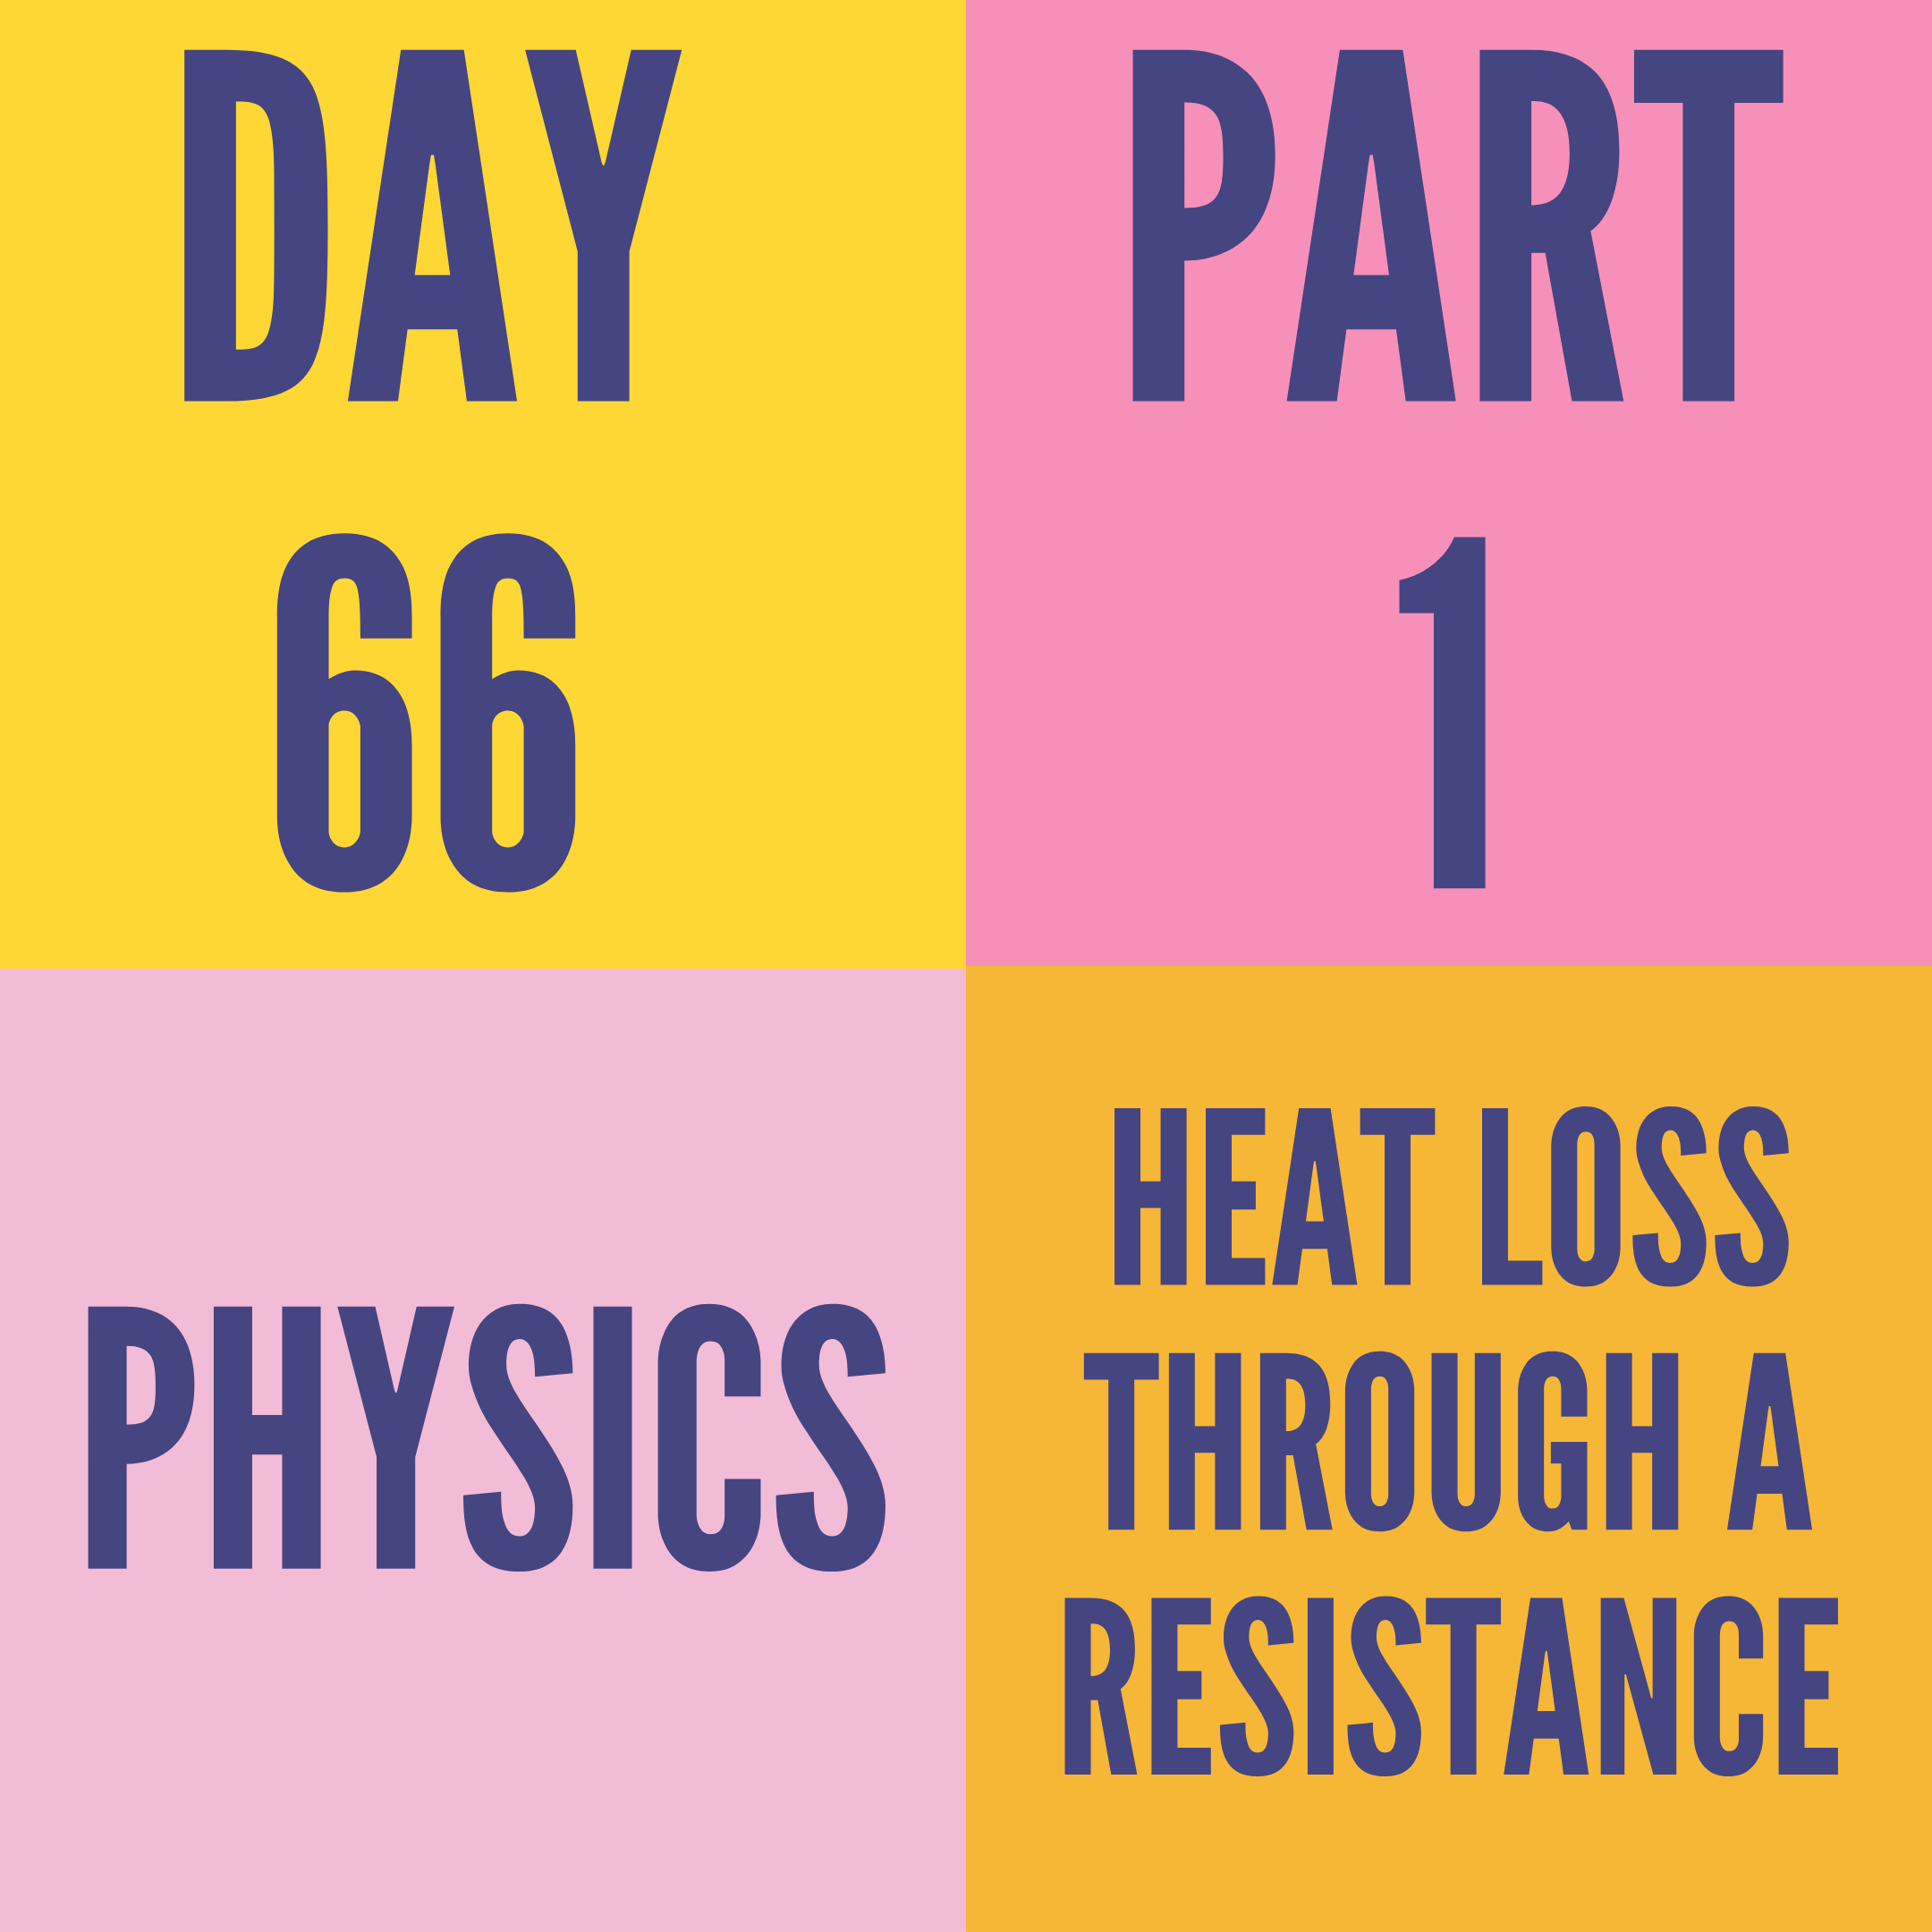 DAY-66 PART-1  HEAT LOSS THROUGH A RESISTANCE